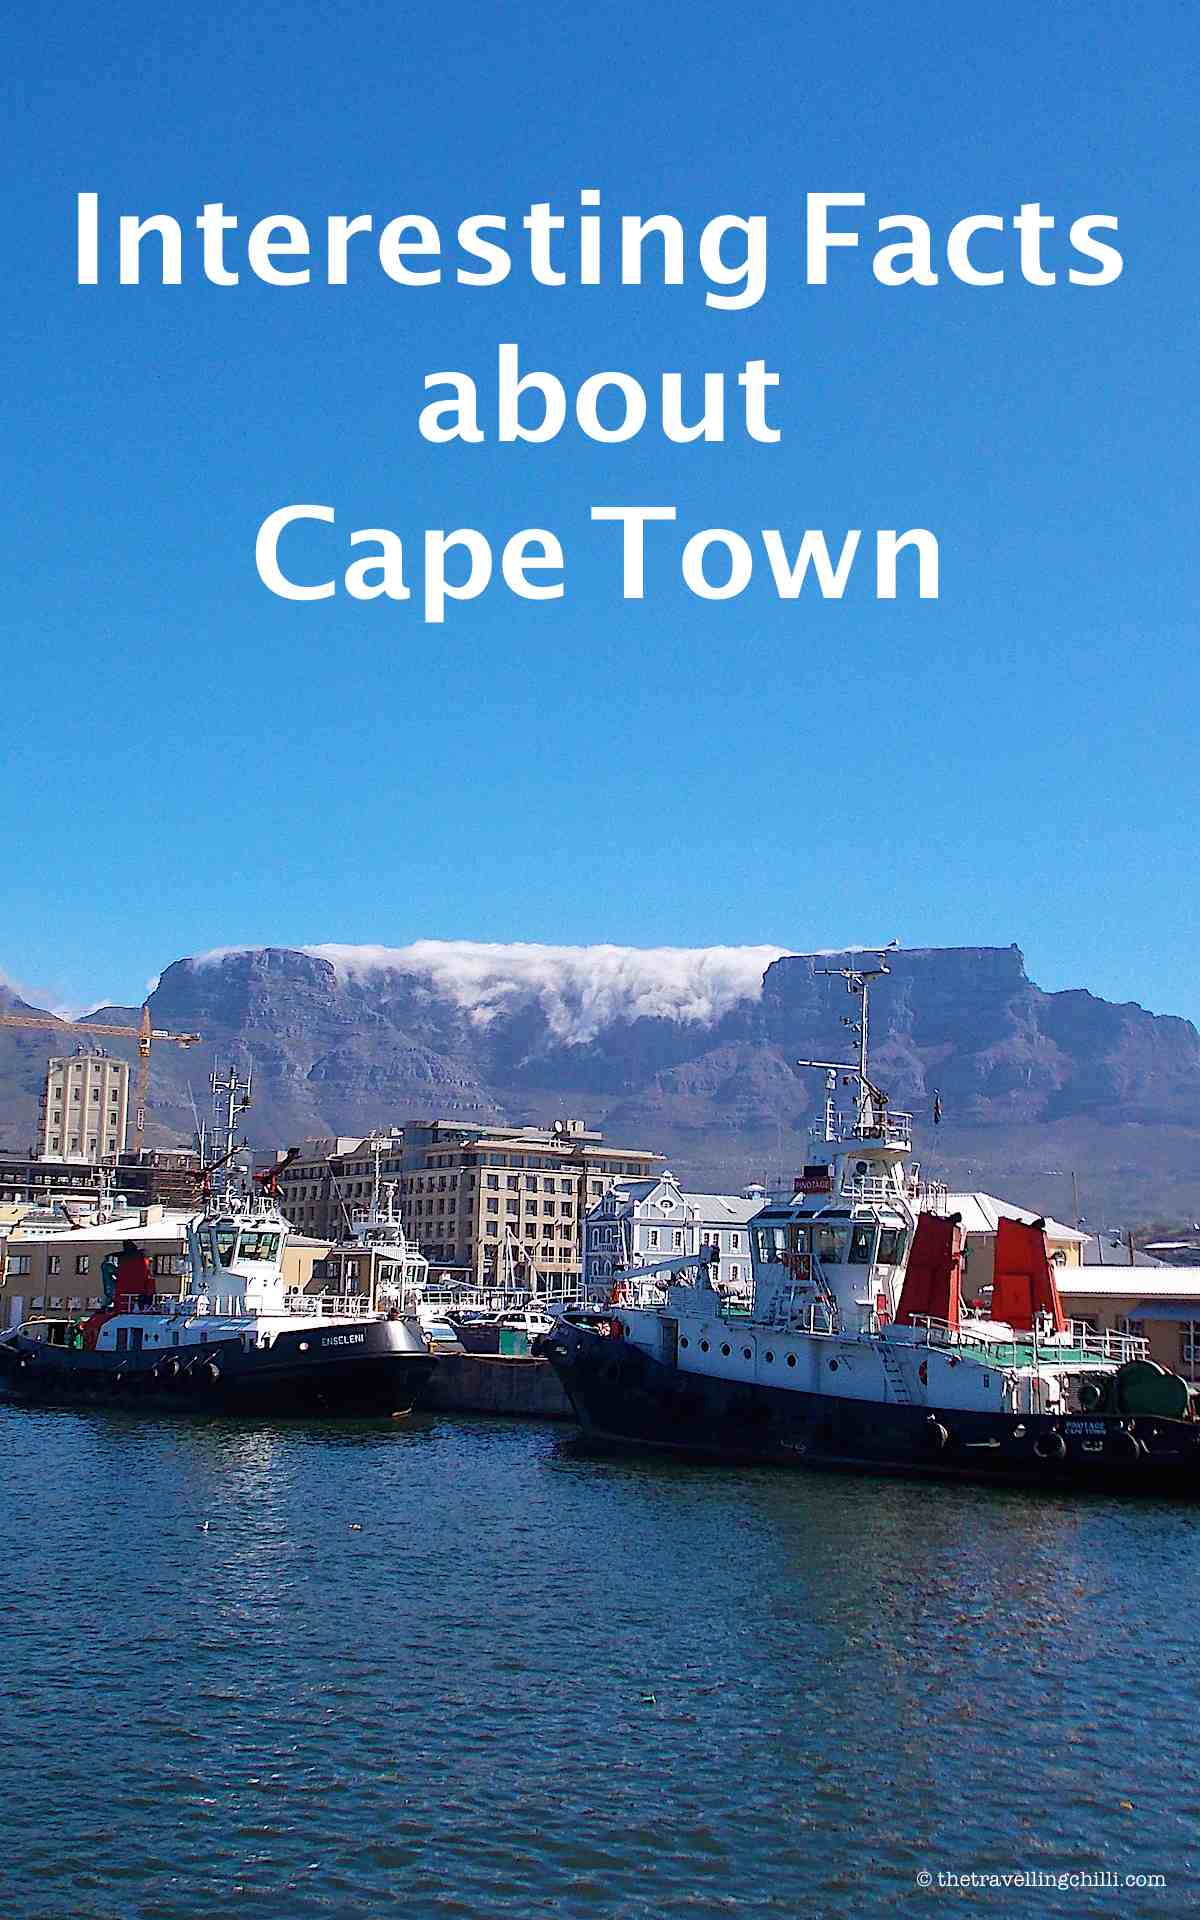 Interesting Facts about Cape Town, South Africa